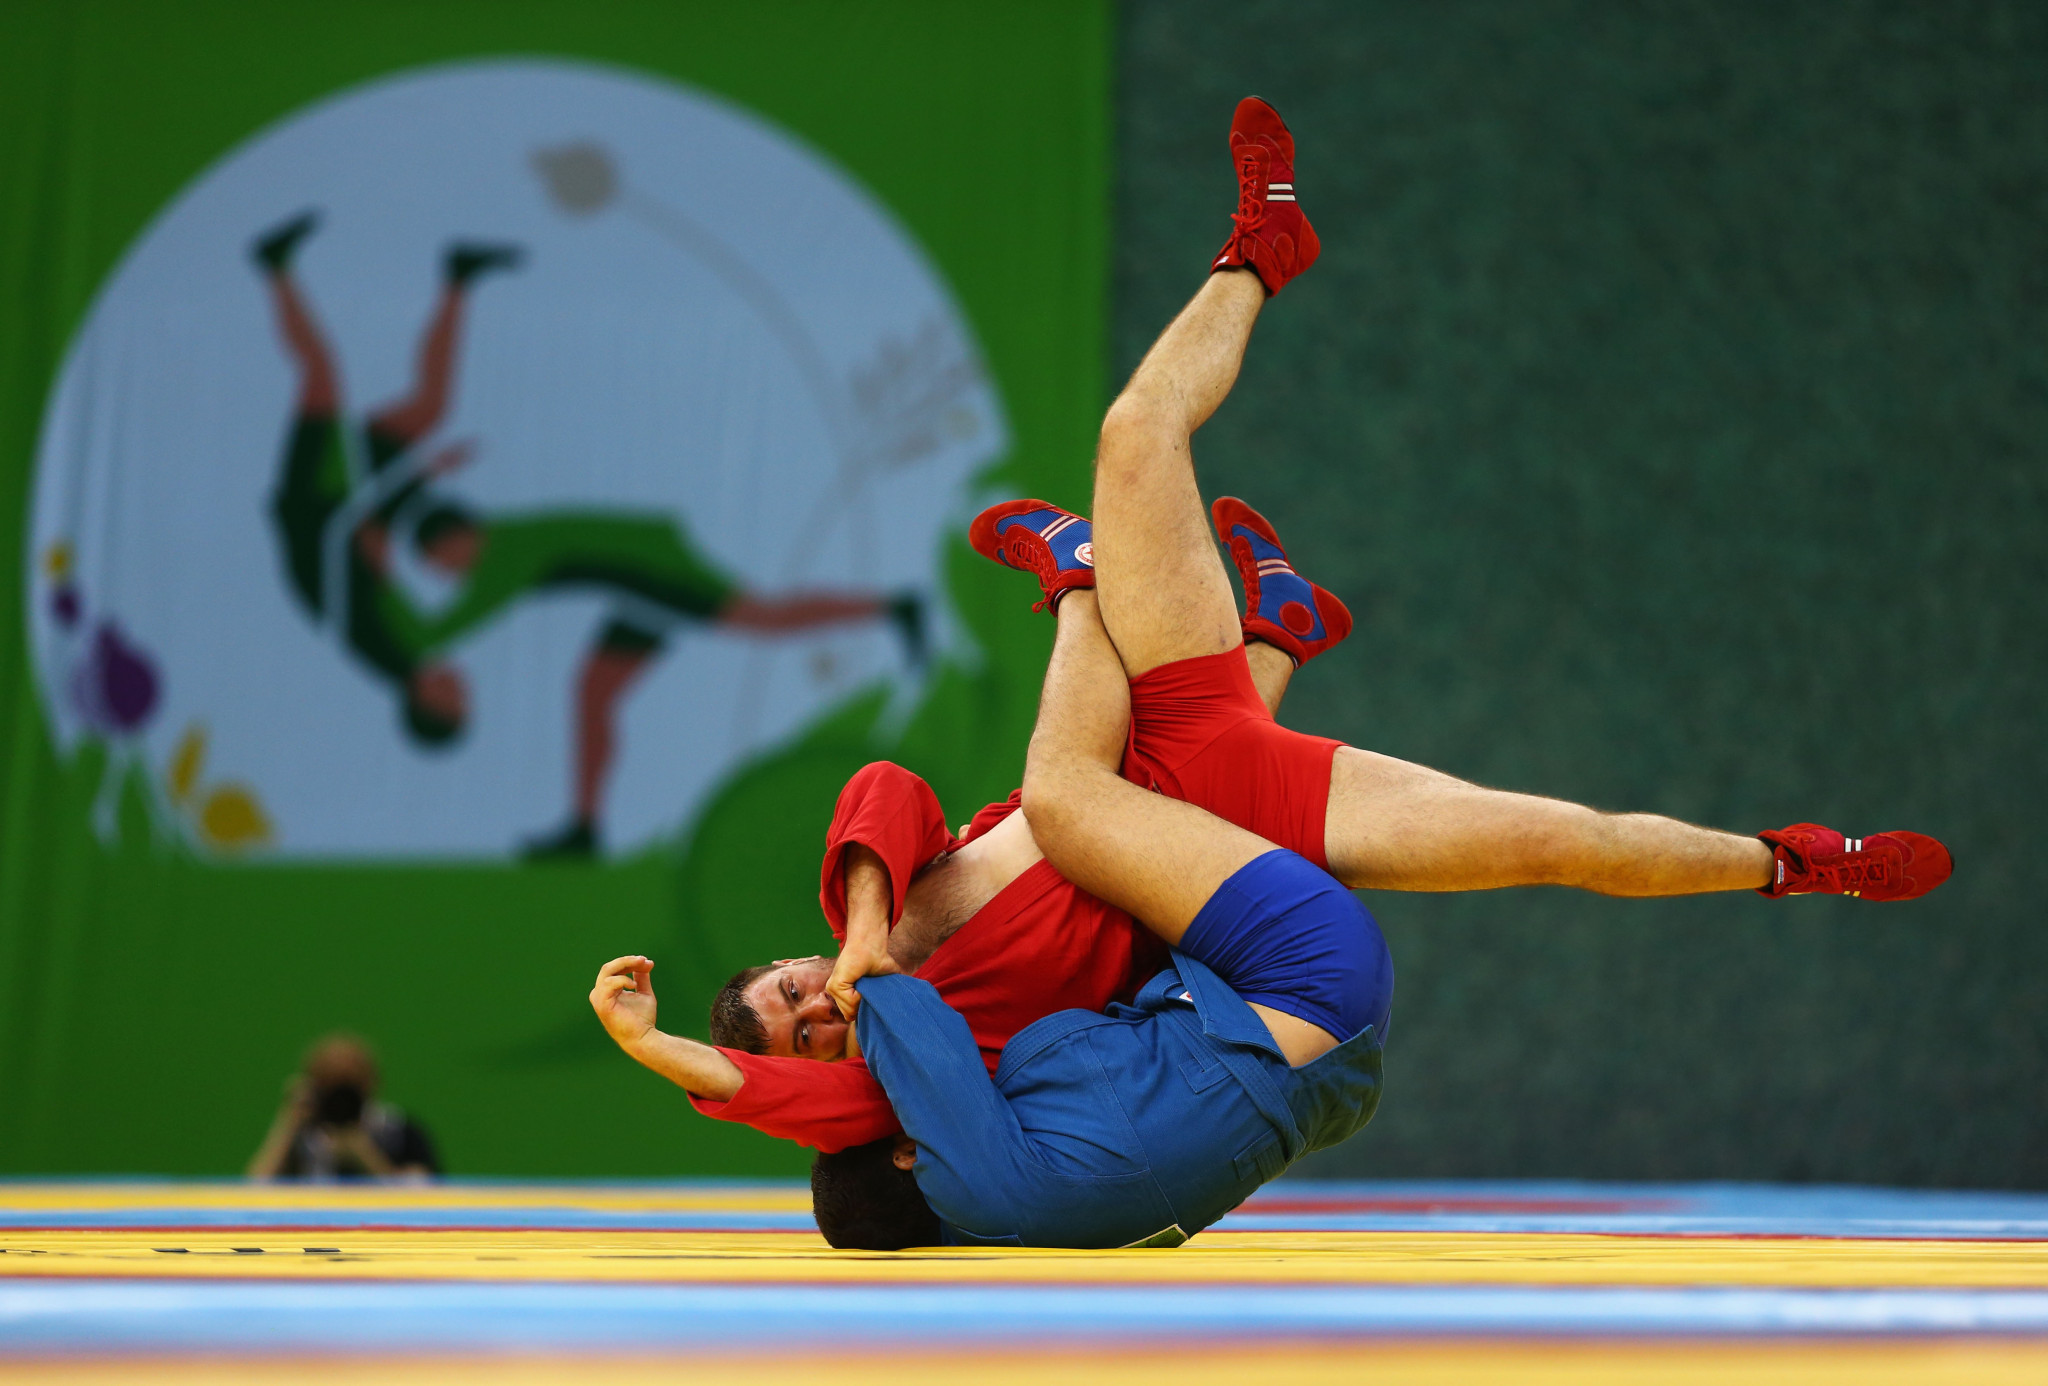 Sambo featured in the 2015 and 2019 European Games ©Getty Images